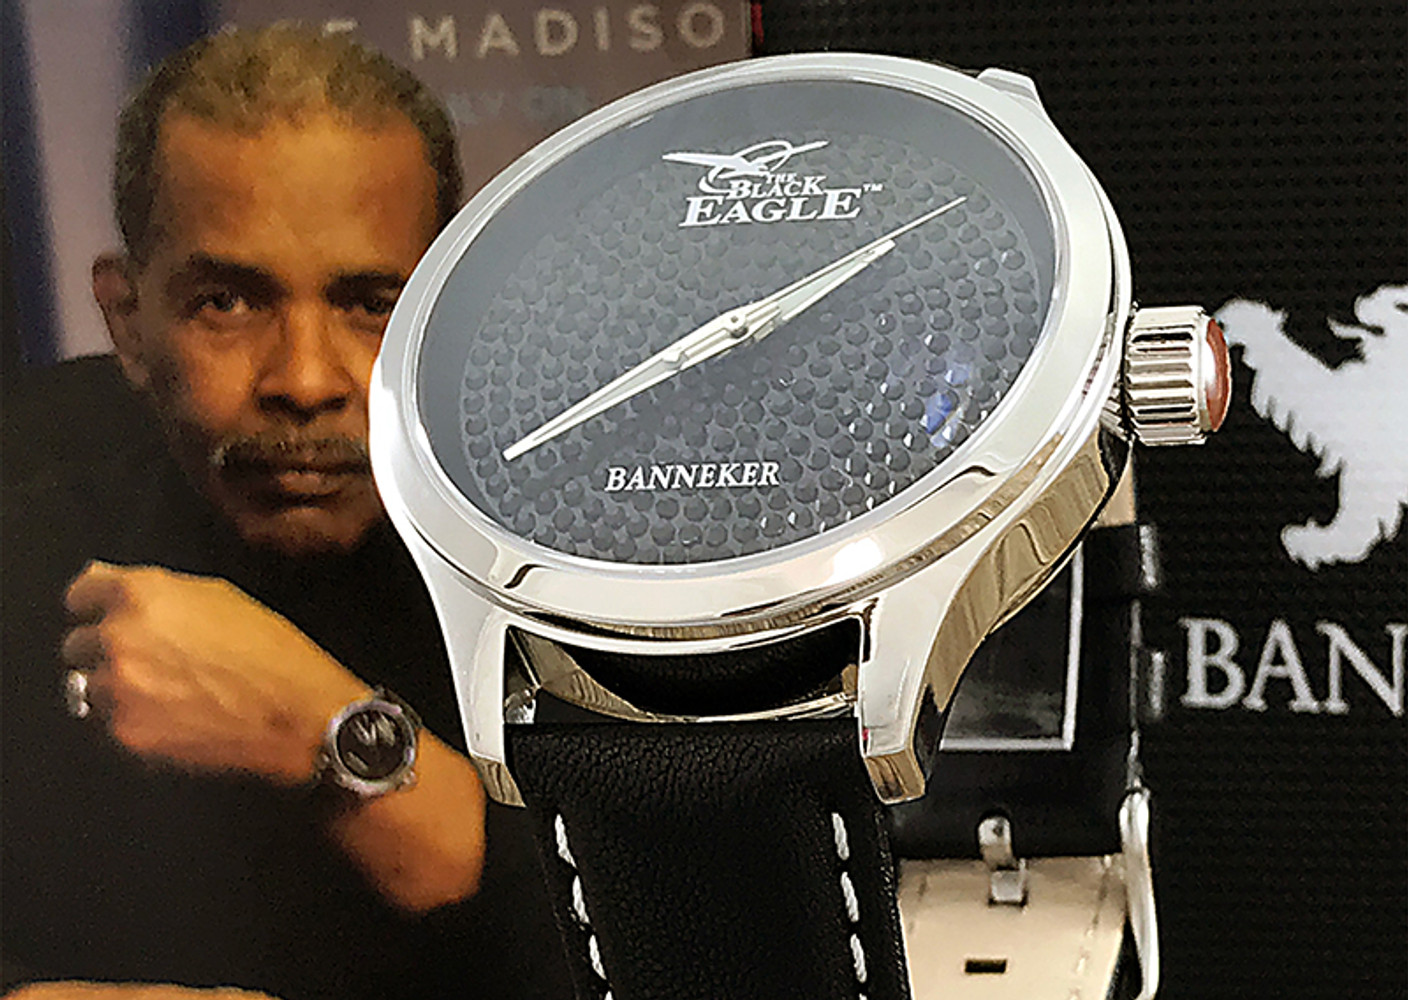 Banneker Watches Now Available on Amazon